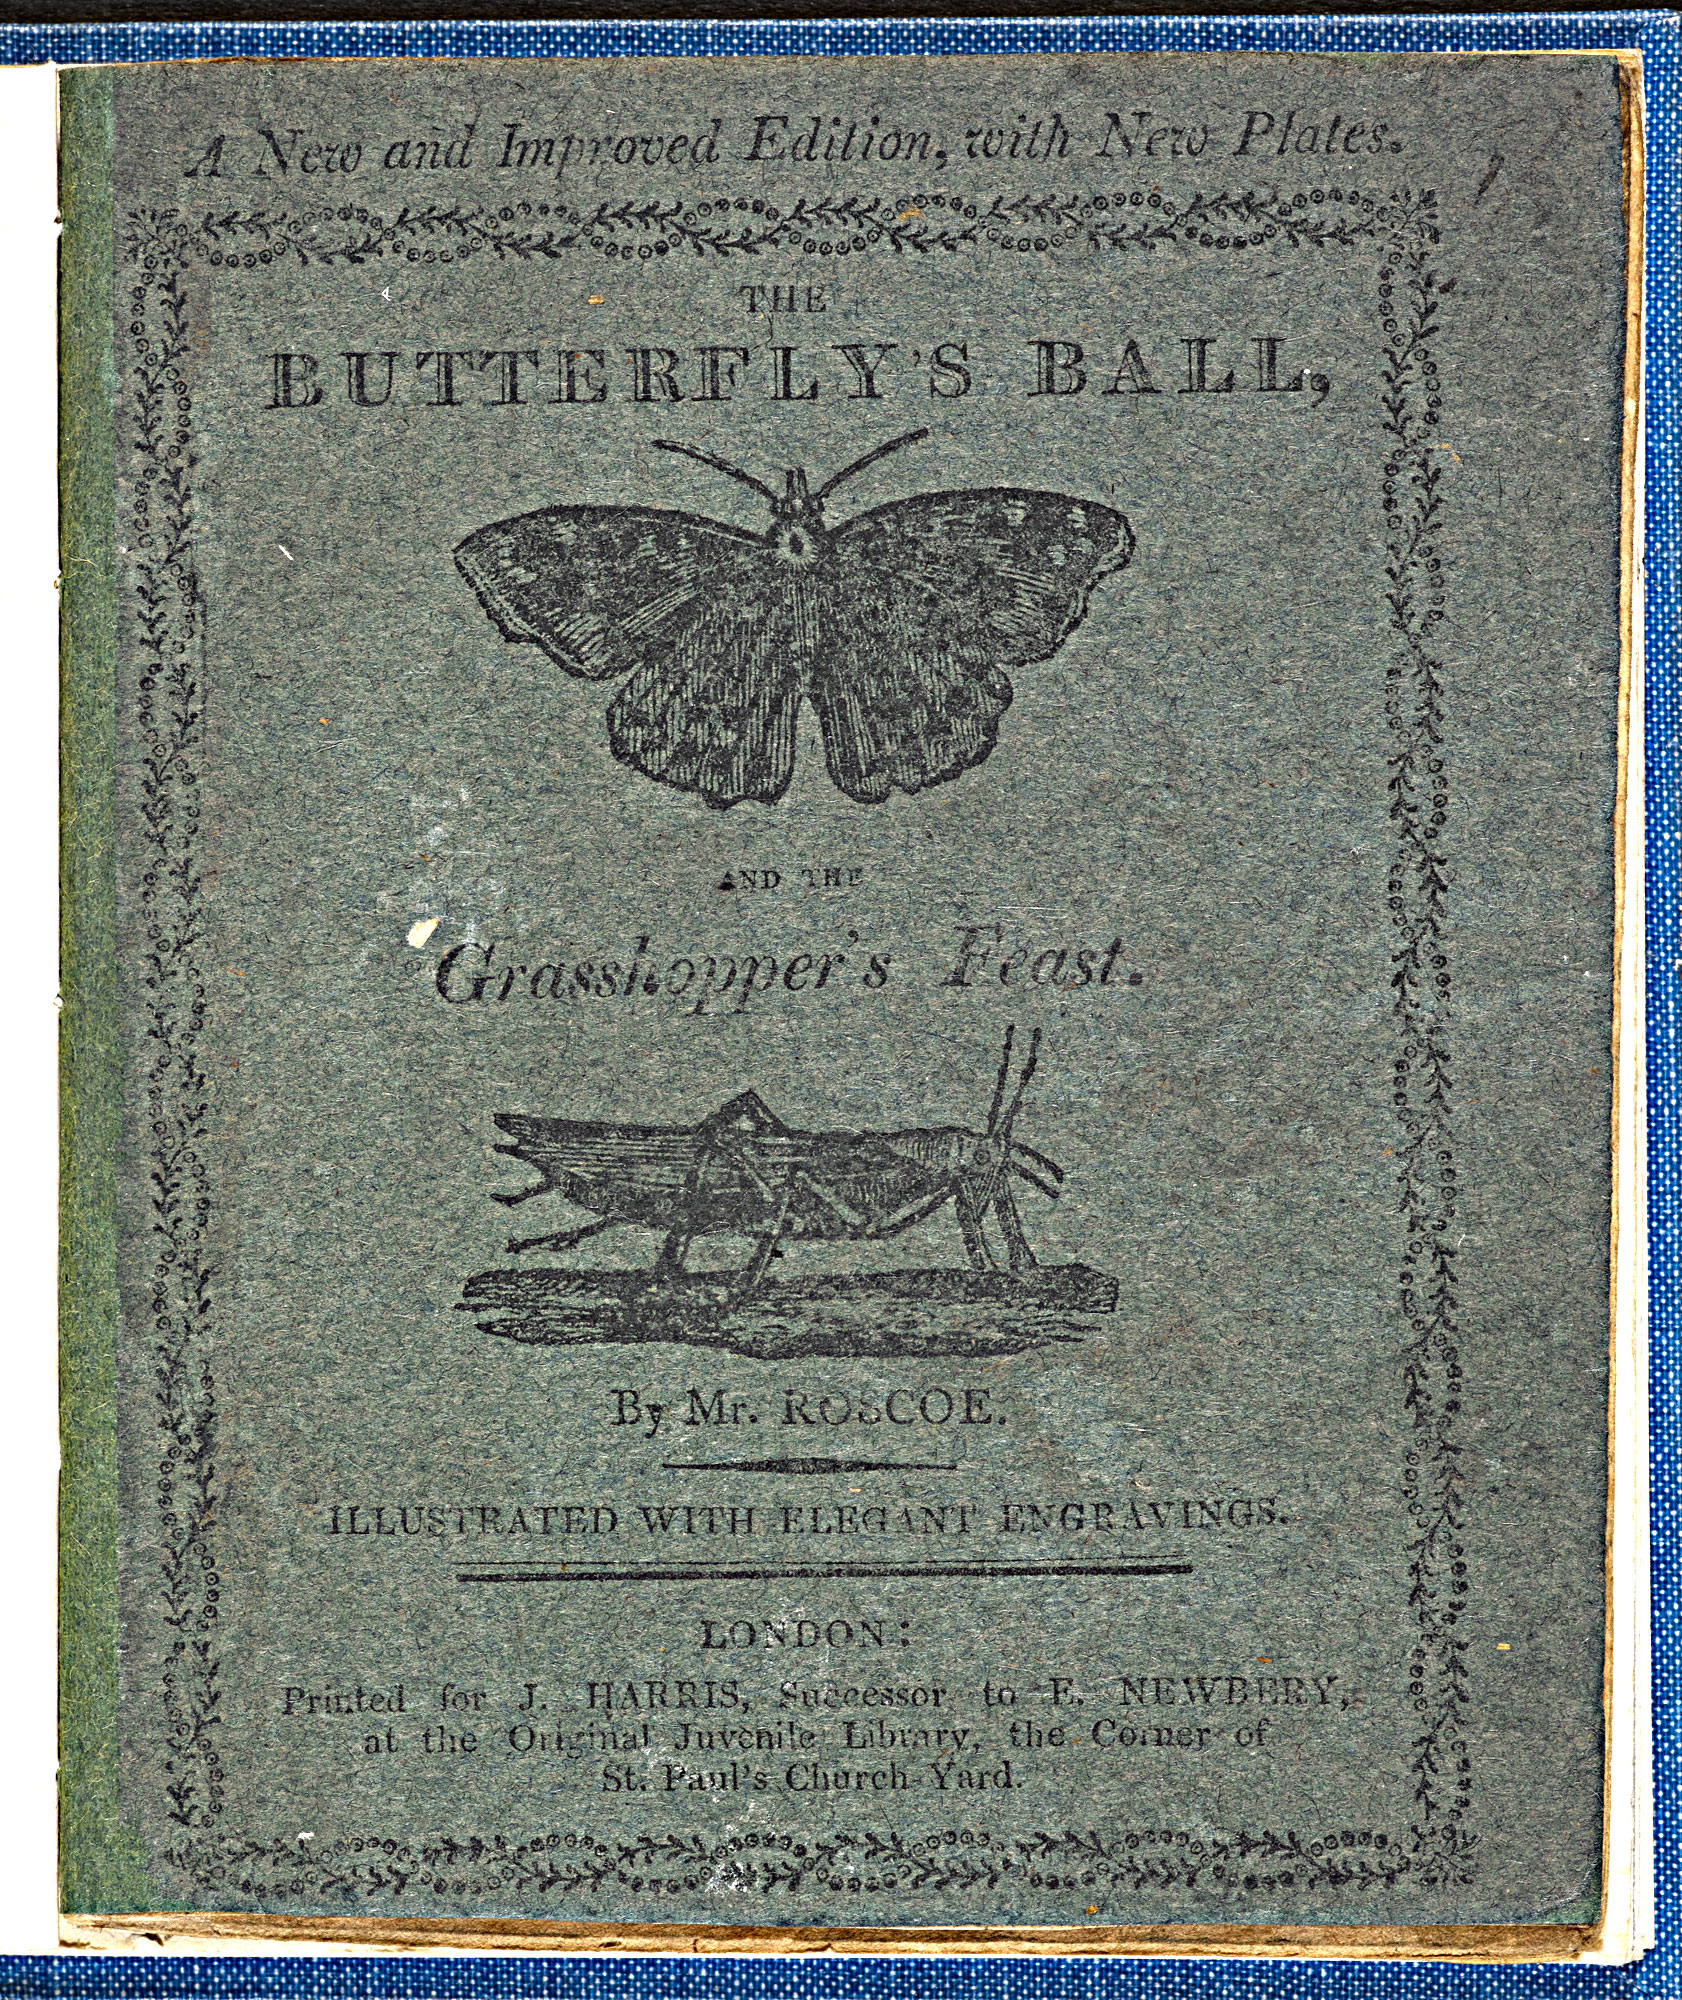 The Butterfly's Ball and The Grasshopper's Feast [page: front cover]